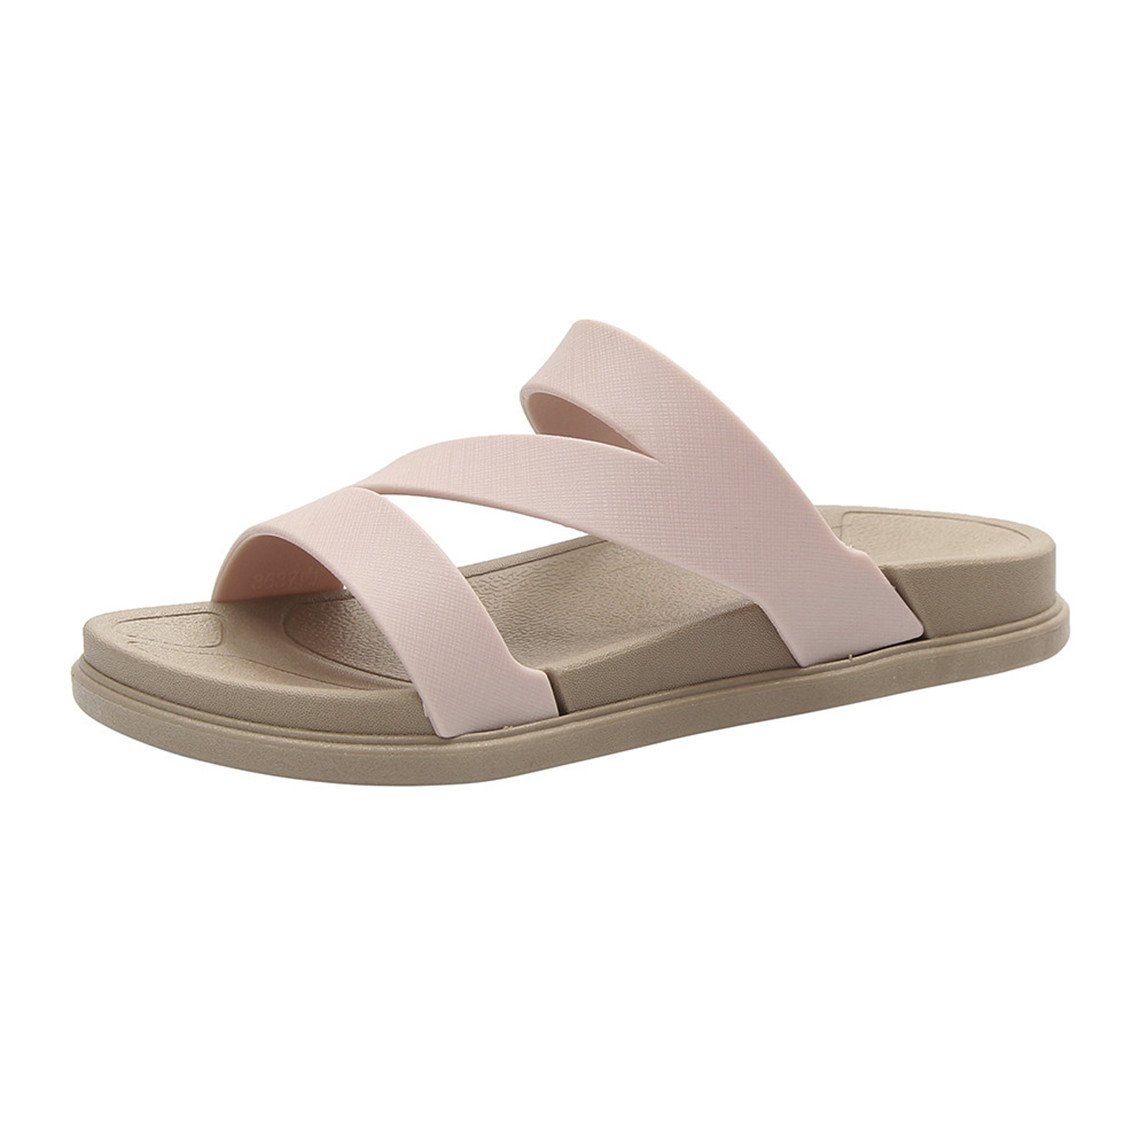 2018 New Ladies Summer Beach Bath Slippers Casual Wedge Sandals Women Shoes B07BNKC1S8 5.5 B(M) US|Beige